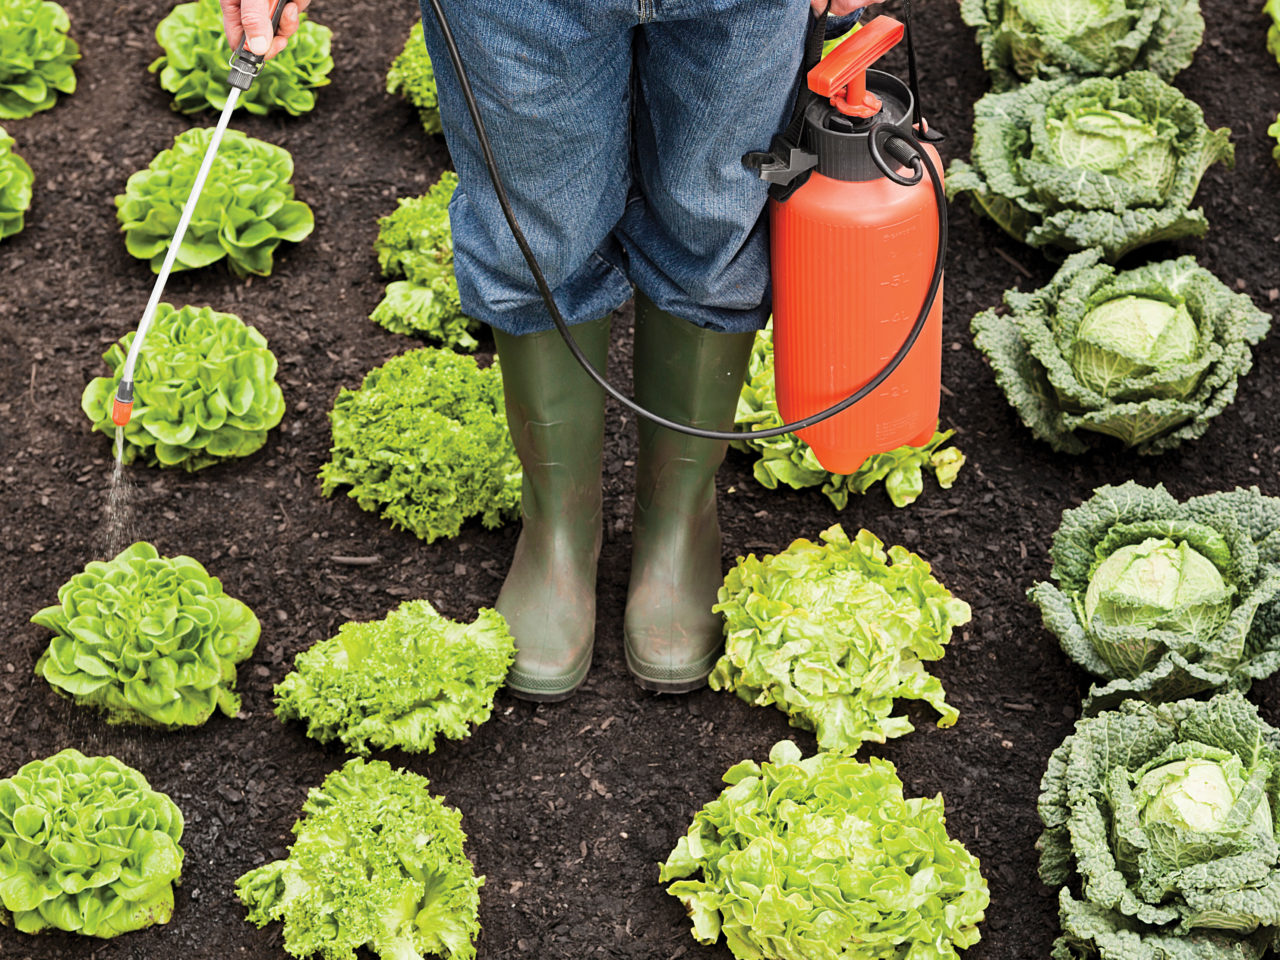 A farmer spraying a field of lettuce to illustrate a piece on organic foods, glyphosate and health